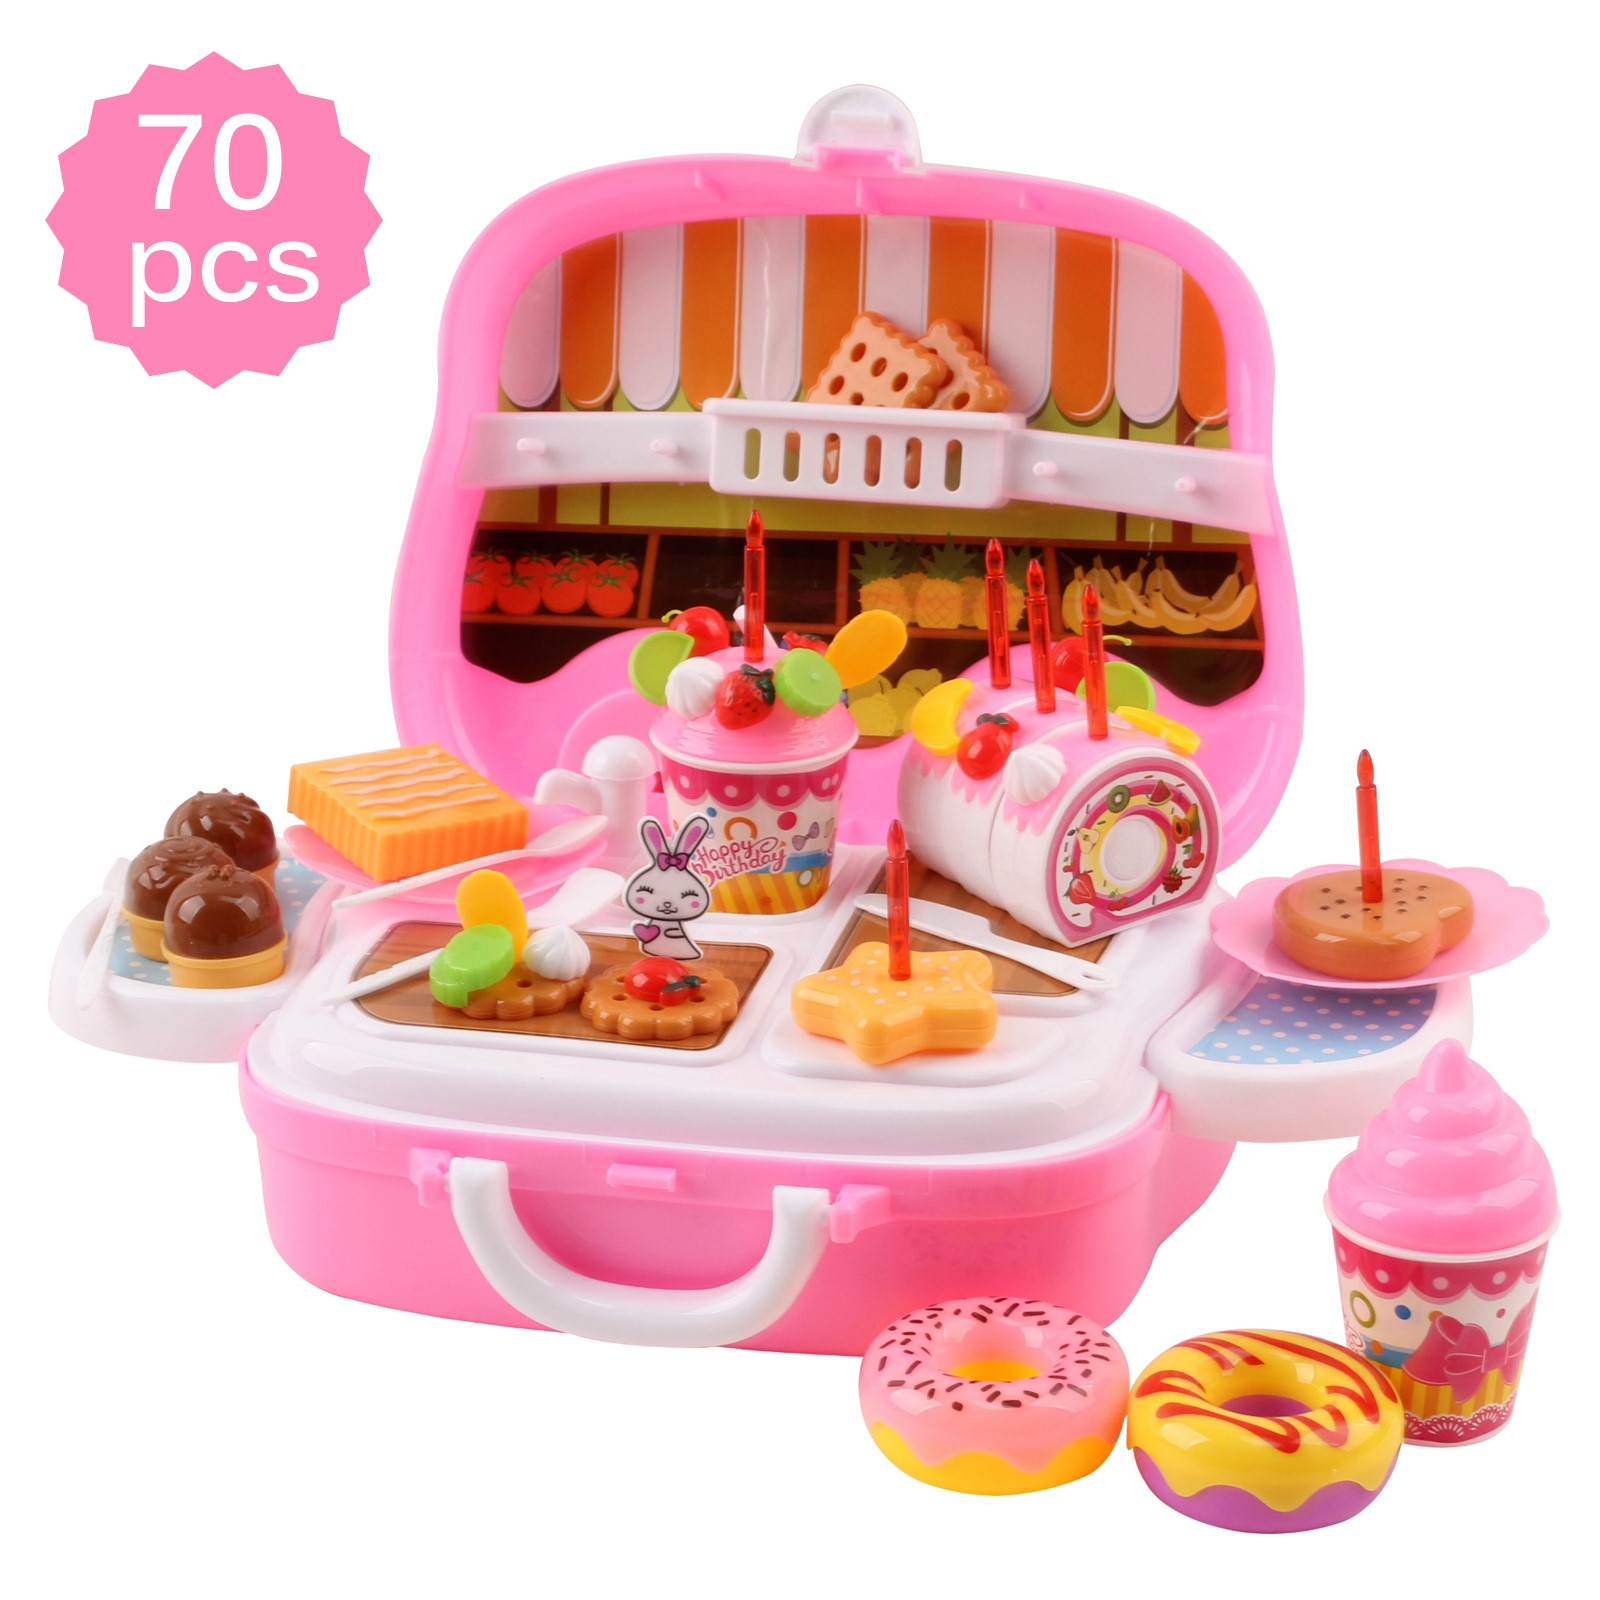 39 Pieces Large Portable Dessert Stand Birthday Cake Ice Cream Cart Candy Trolley Kitchen With Lights Music Candles Food Toys 3 feet tall Children's Party Pretend Play Truck Folds Up in Suitcase Playset Appliance Set Pieces